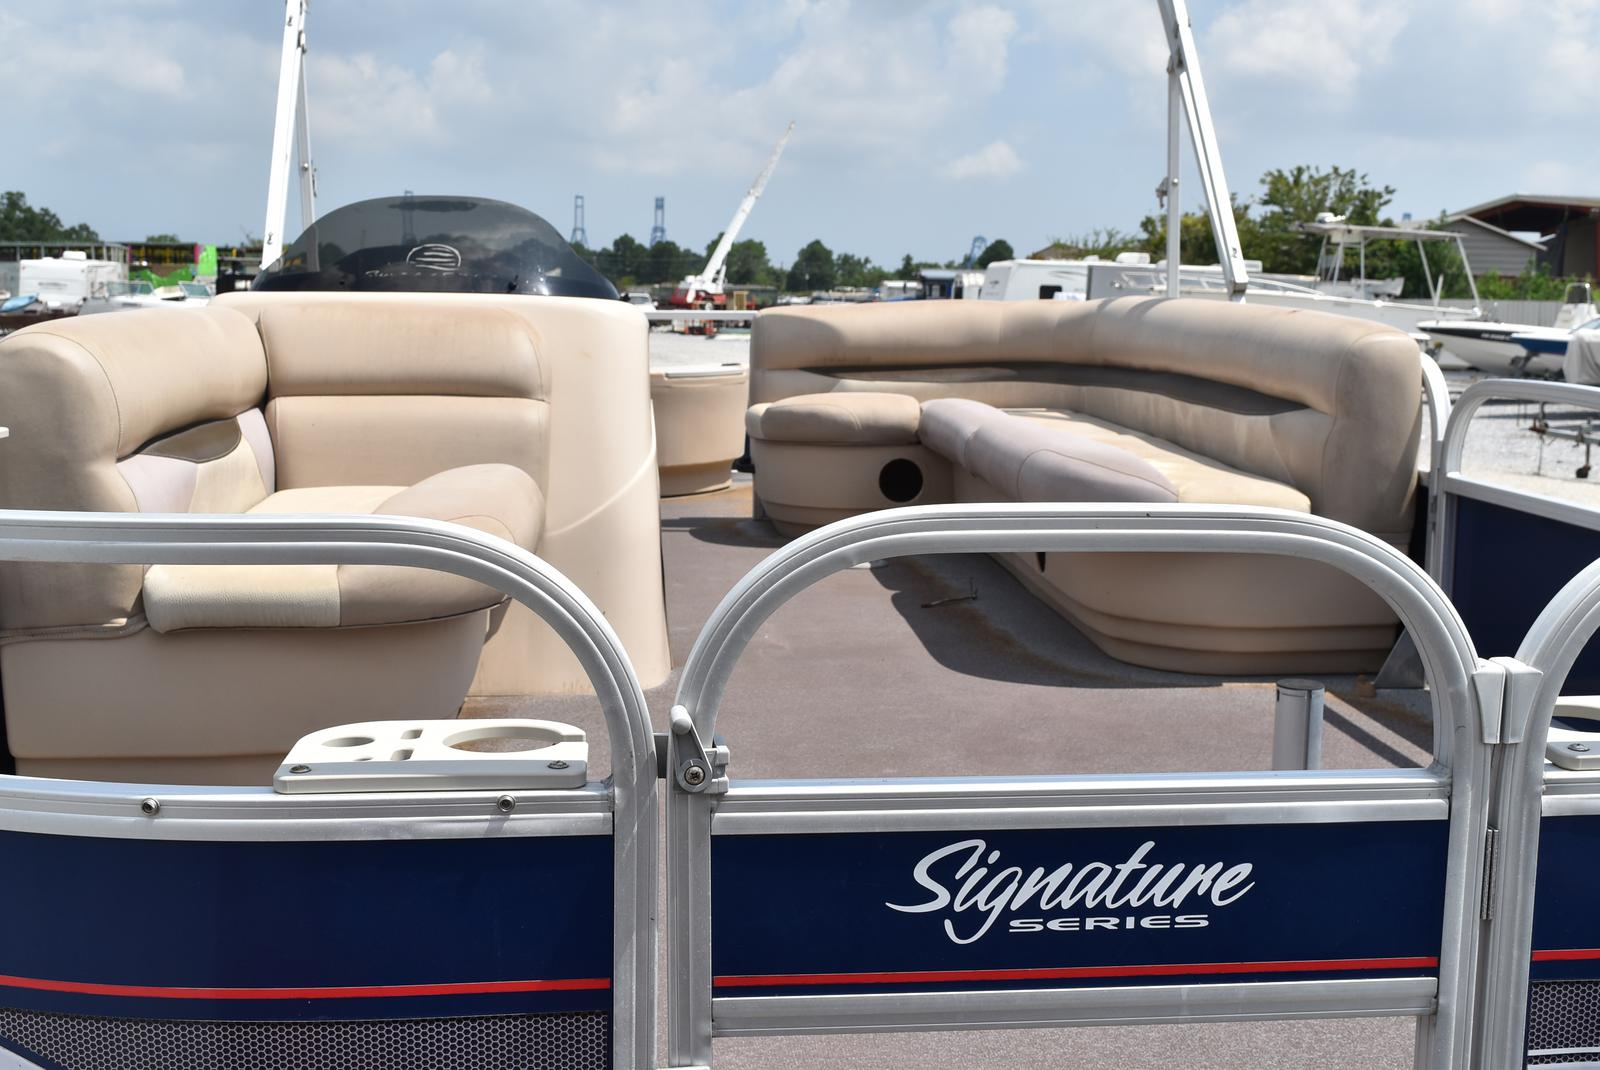 2015 Sun Tracker boat for sale, model of the boat is 20 Party Barge & Image # 5 of 6